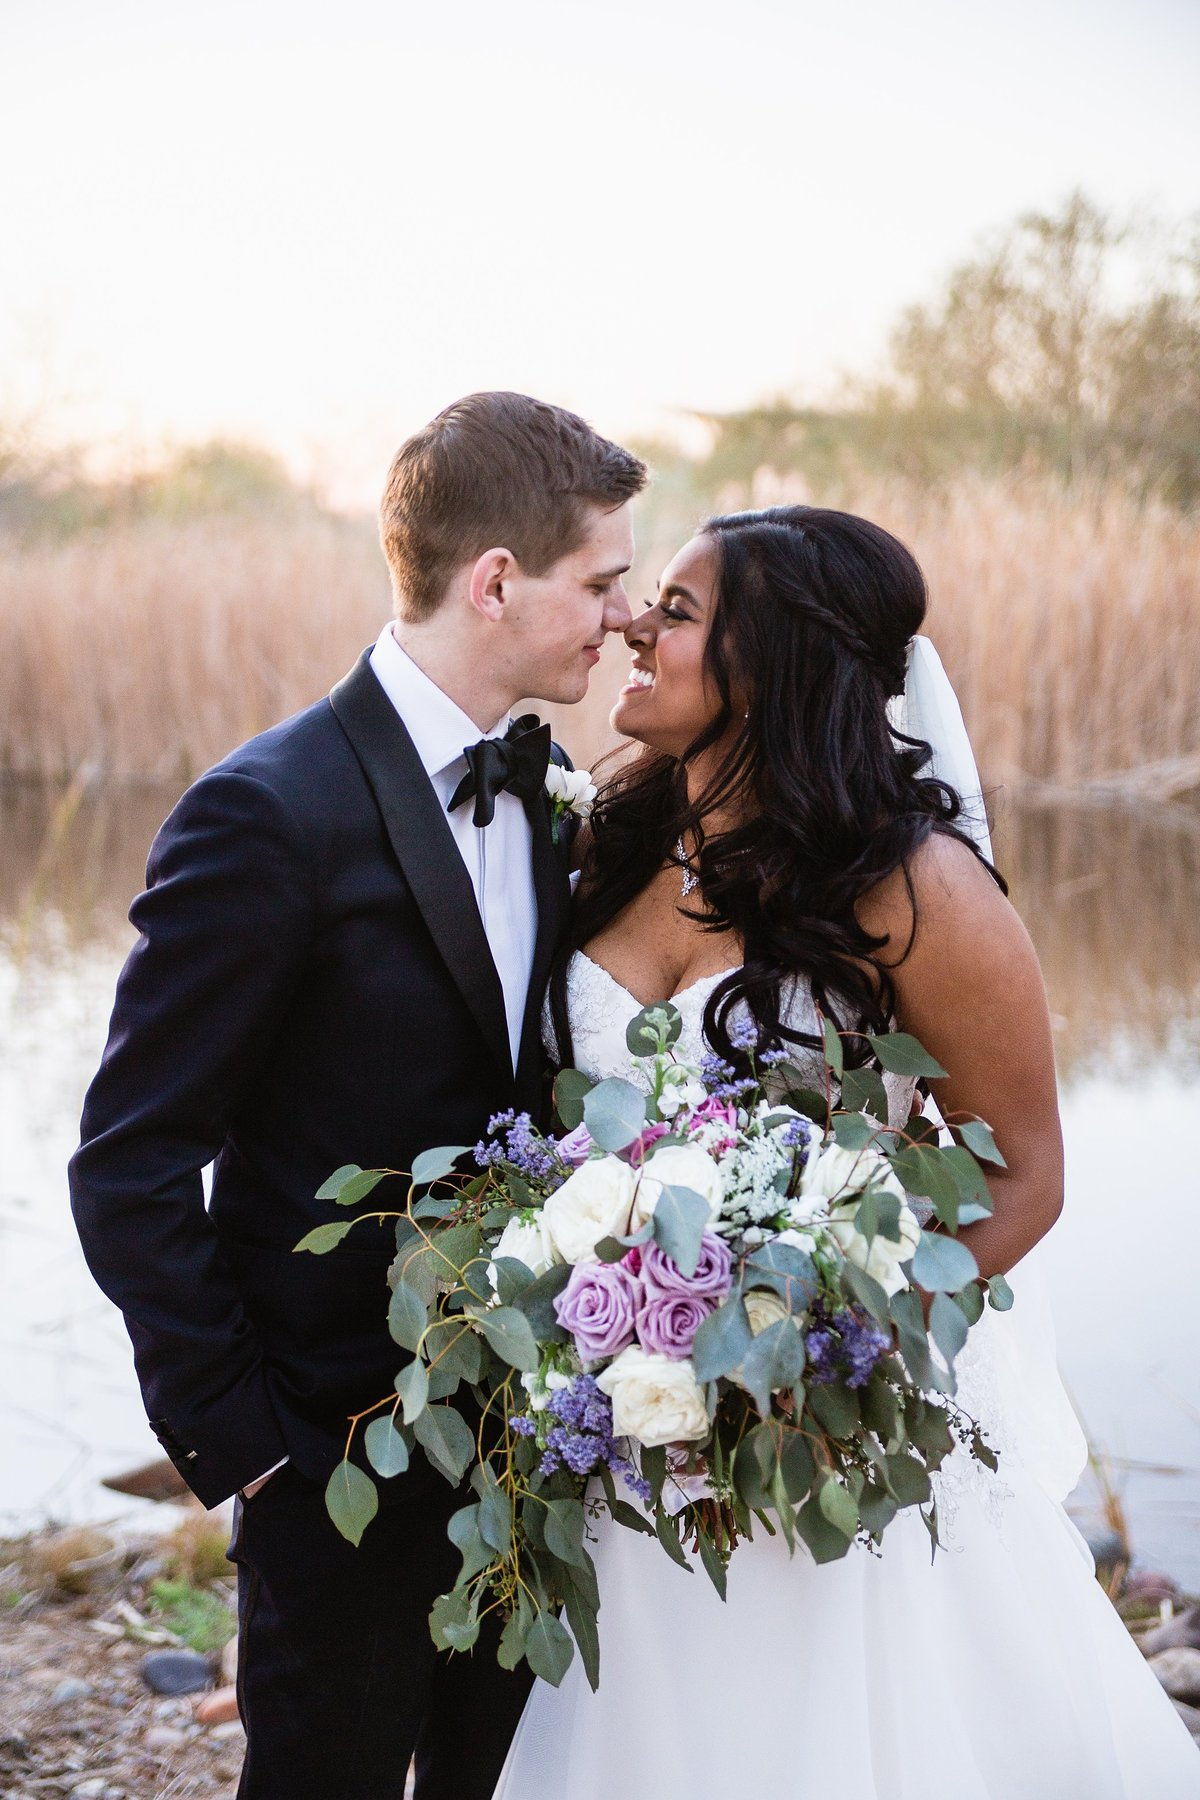 Bride and groom share a romantic moment at their desert wedding by Phoenix wedding photographer PMA Photography.